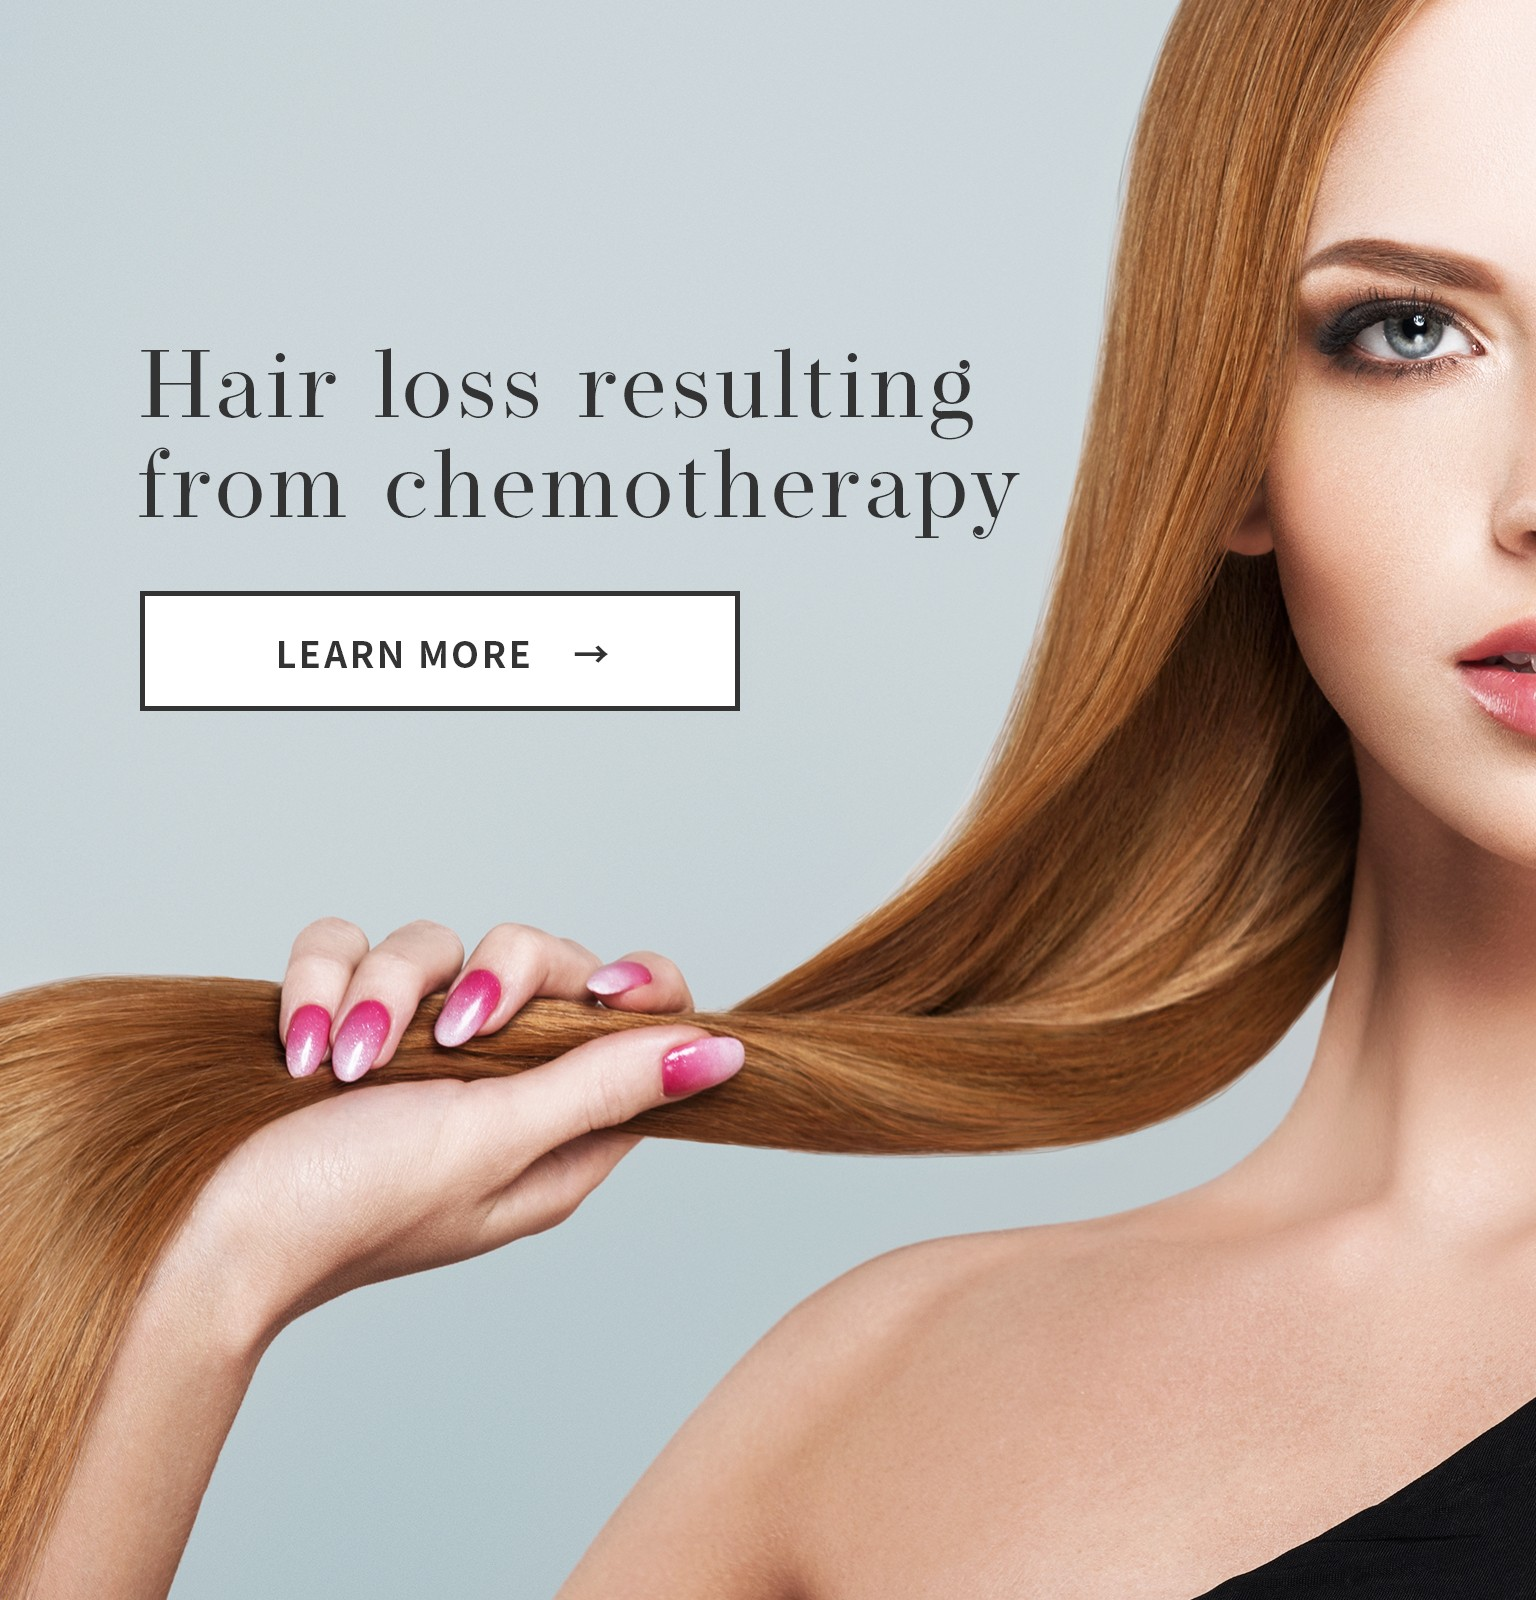 Hair loss resulting from chemotherapy